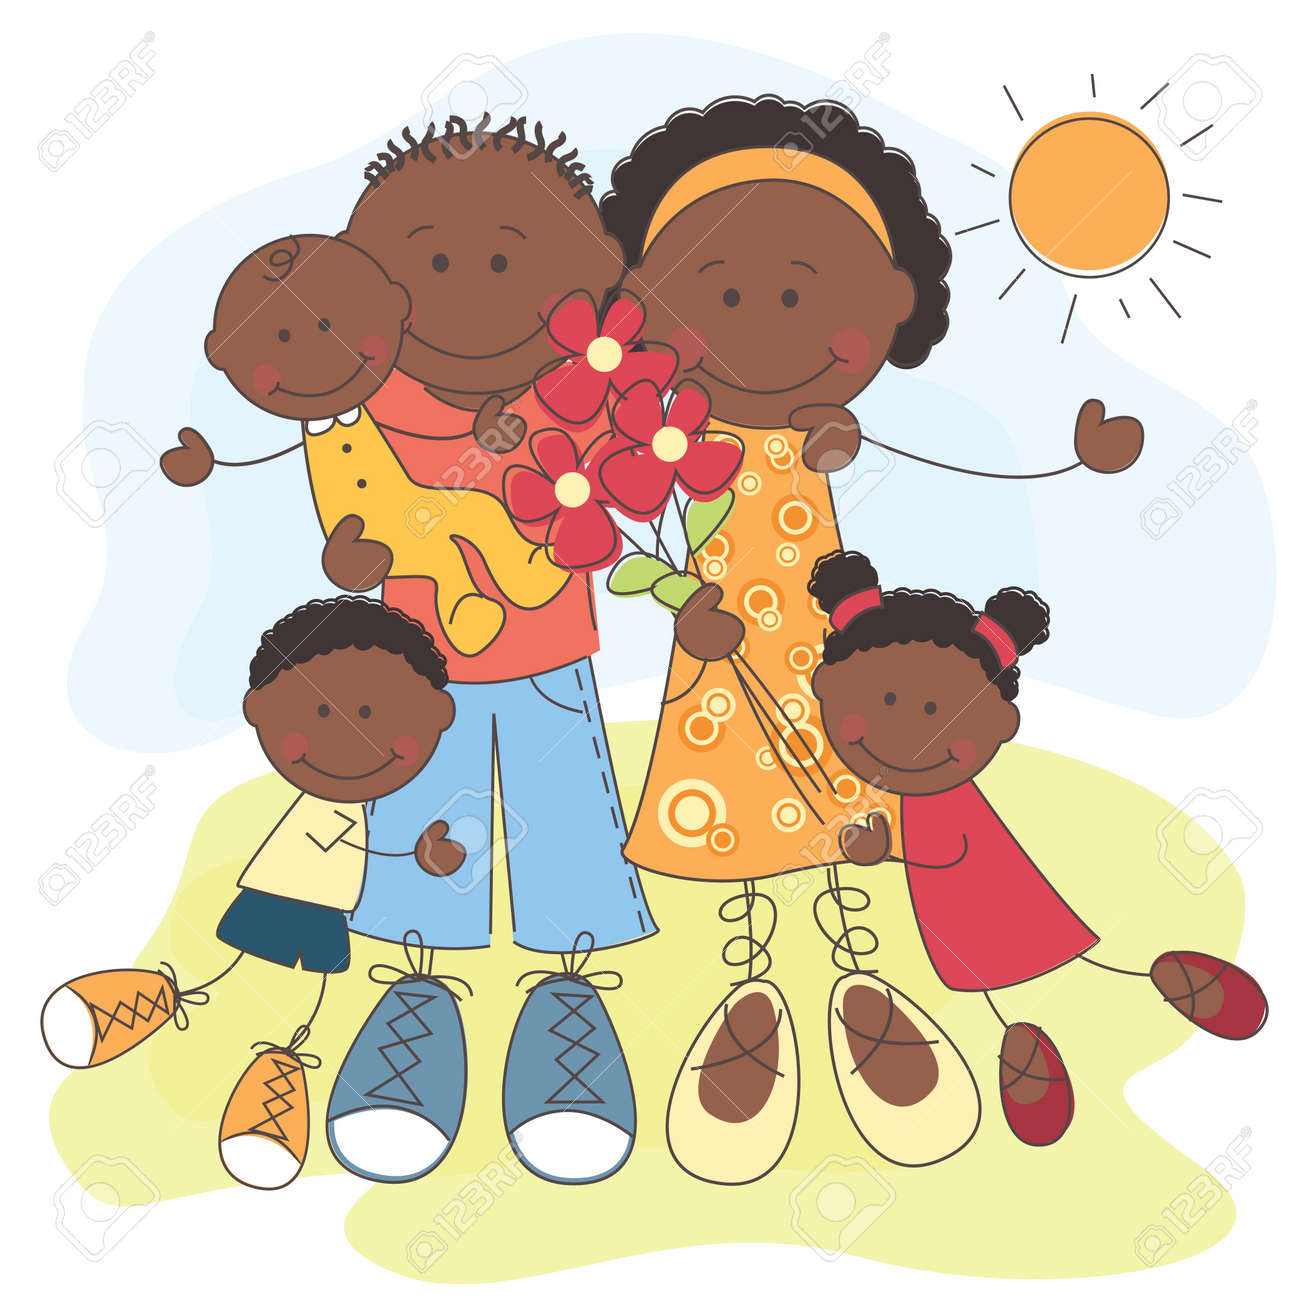 illustration of Happy African American Family Stock Vector - 13962737